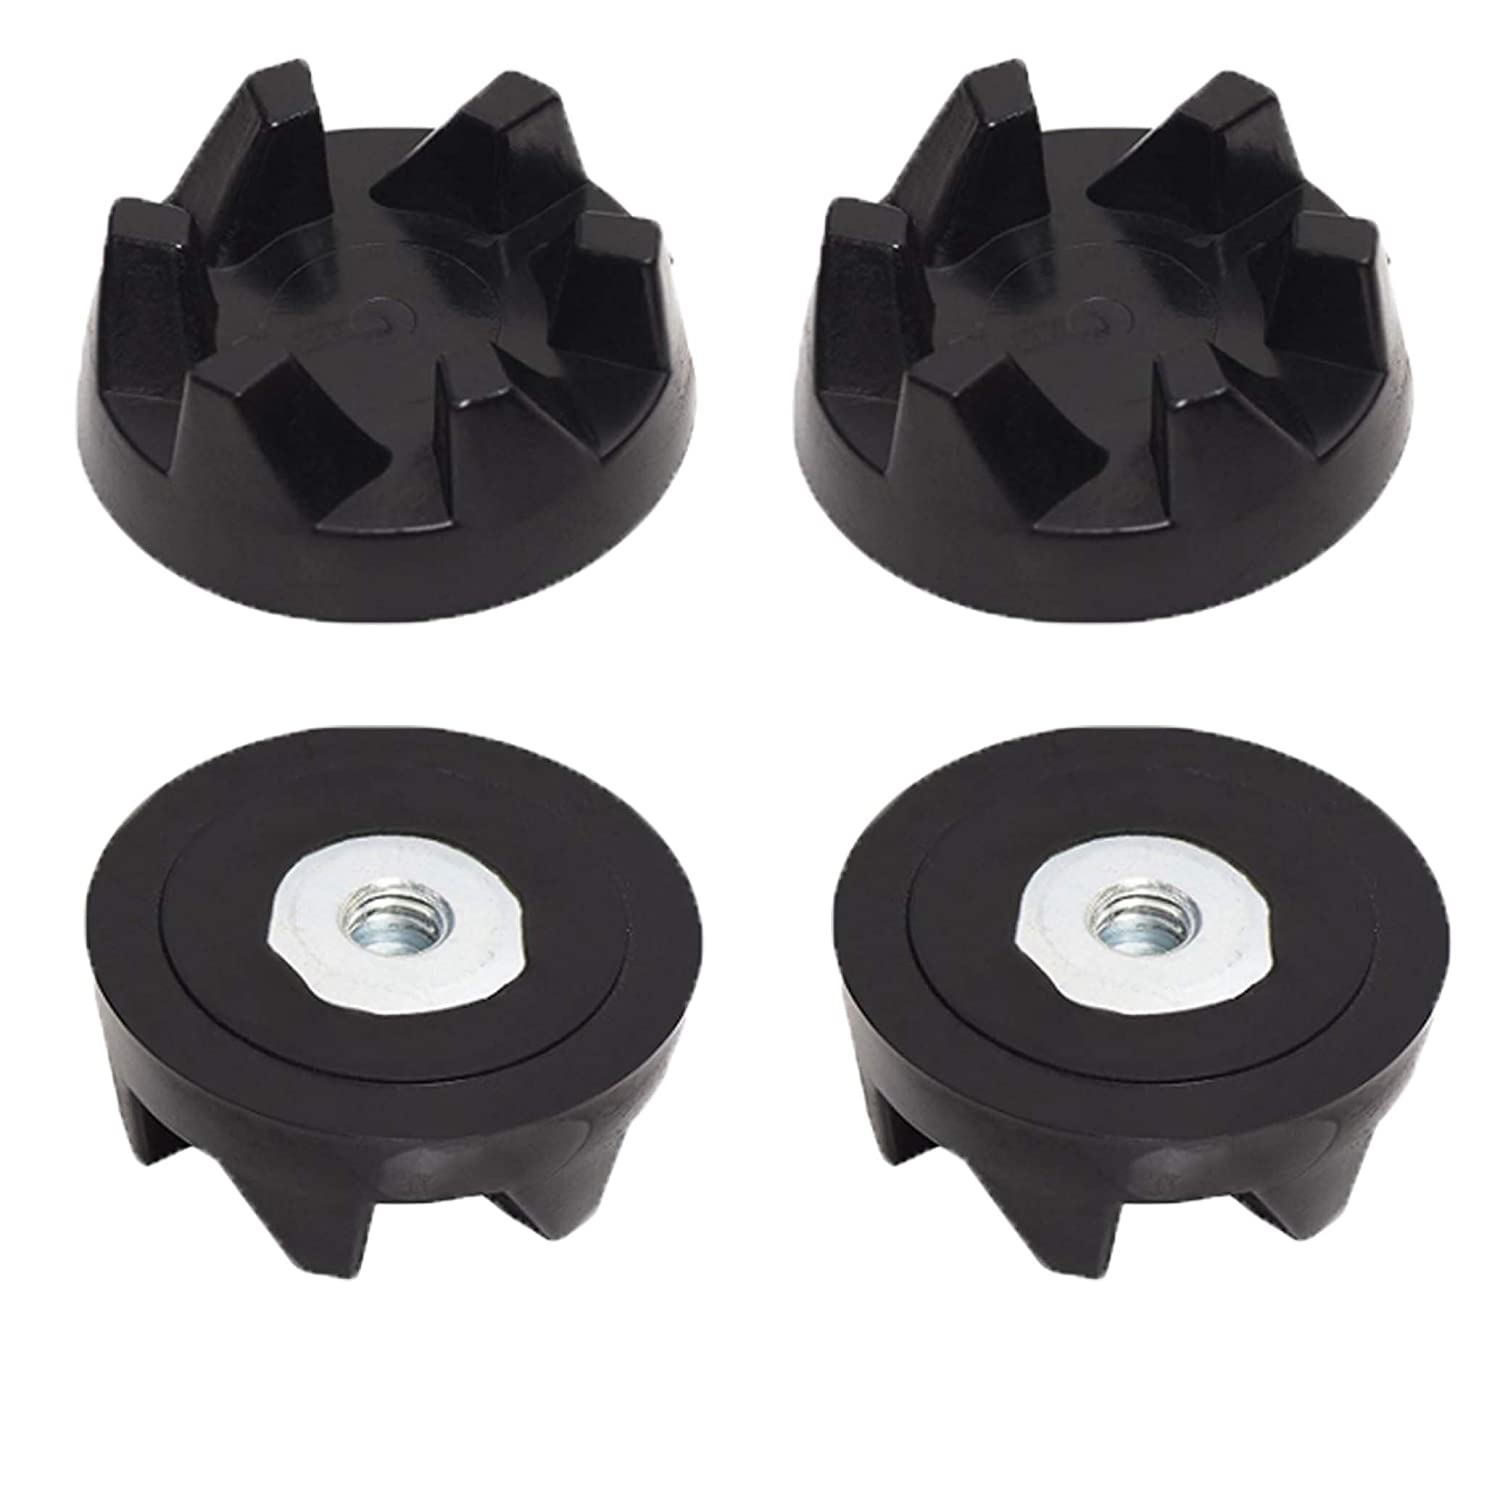 2 Pack of 9704230 Replacement Blender Coupler with Removal Tool for KitchenAid Blender KSB5 KSB3